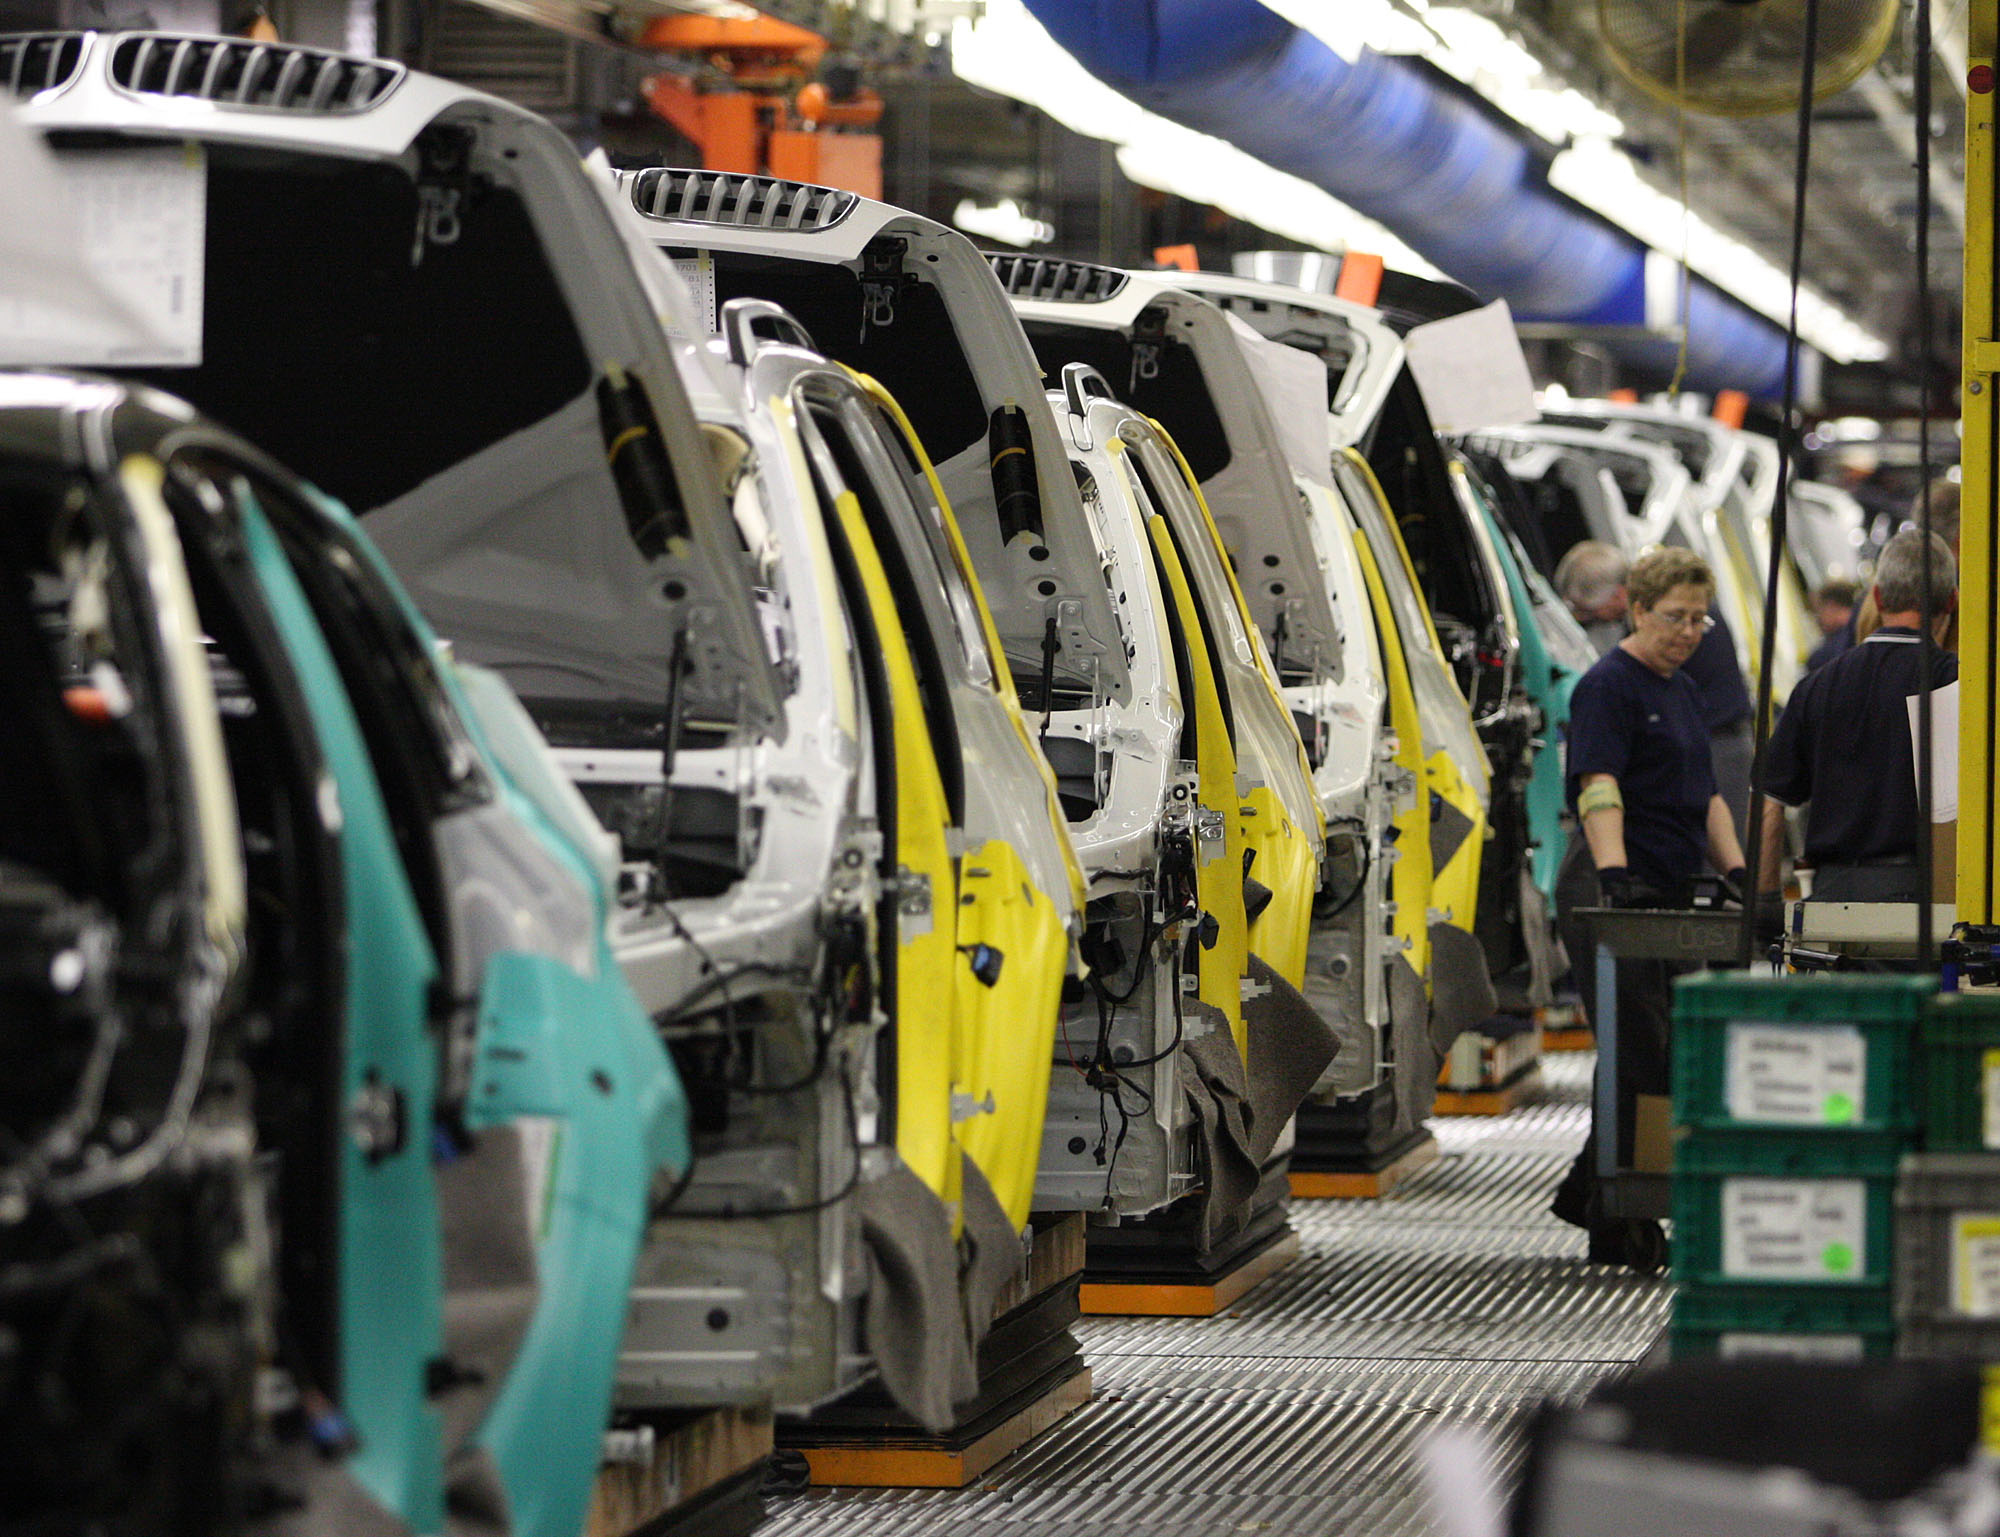 Bmw Plant Greenville Sc >> 20 year after opening plant in South Carolina, BMW exceeding employment, production goals - The ...